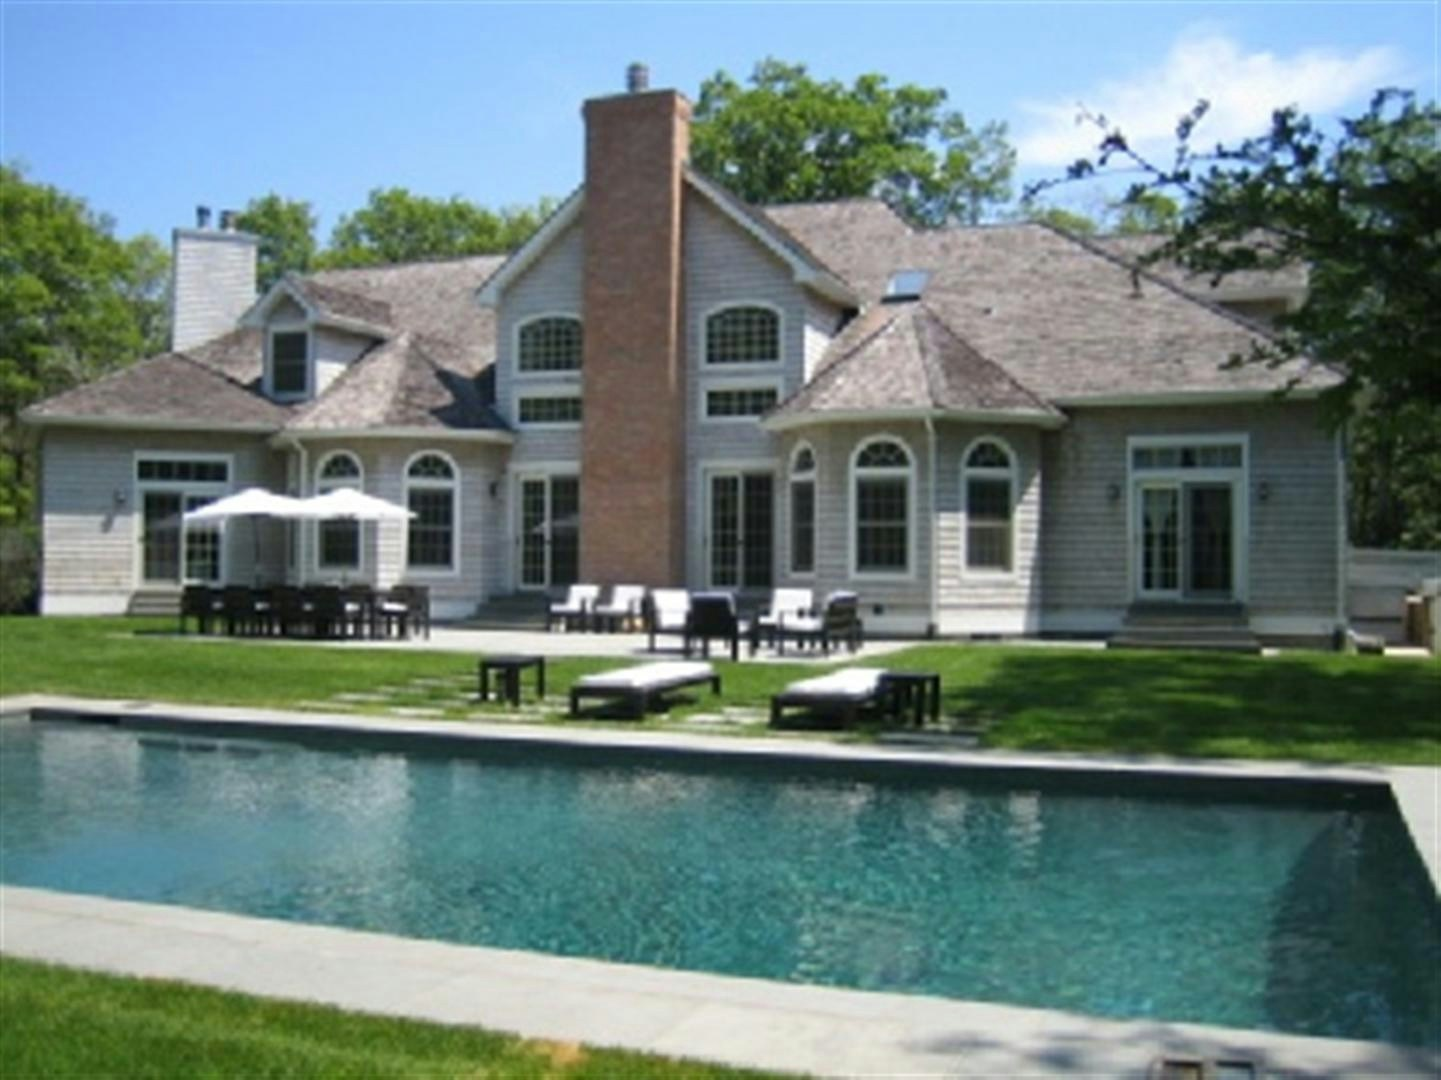 Single Family Home for Rent at Northwest Chic and Spacious East Hampton, New York, 11937 United States